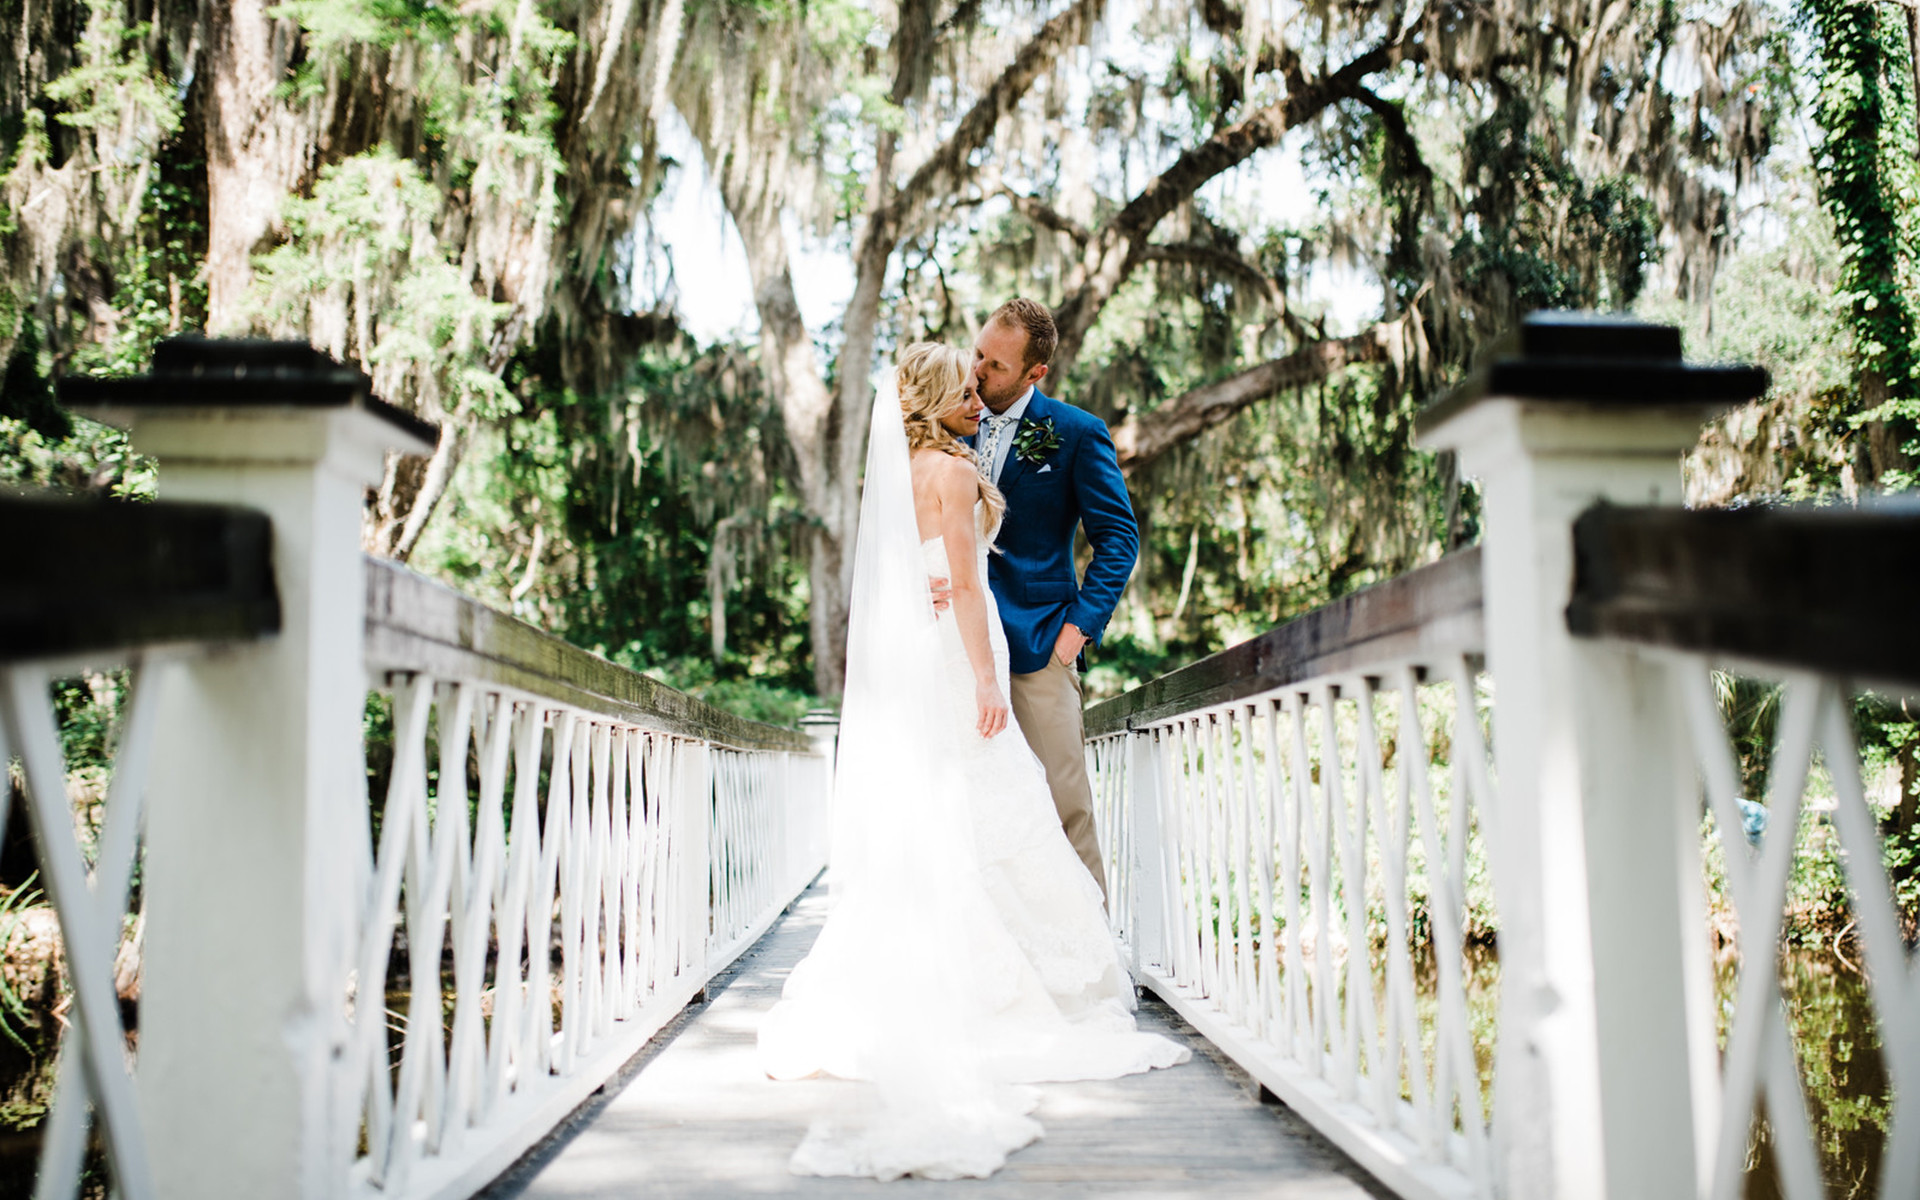 Gold, Glam and Greenery on a Historic Plantation